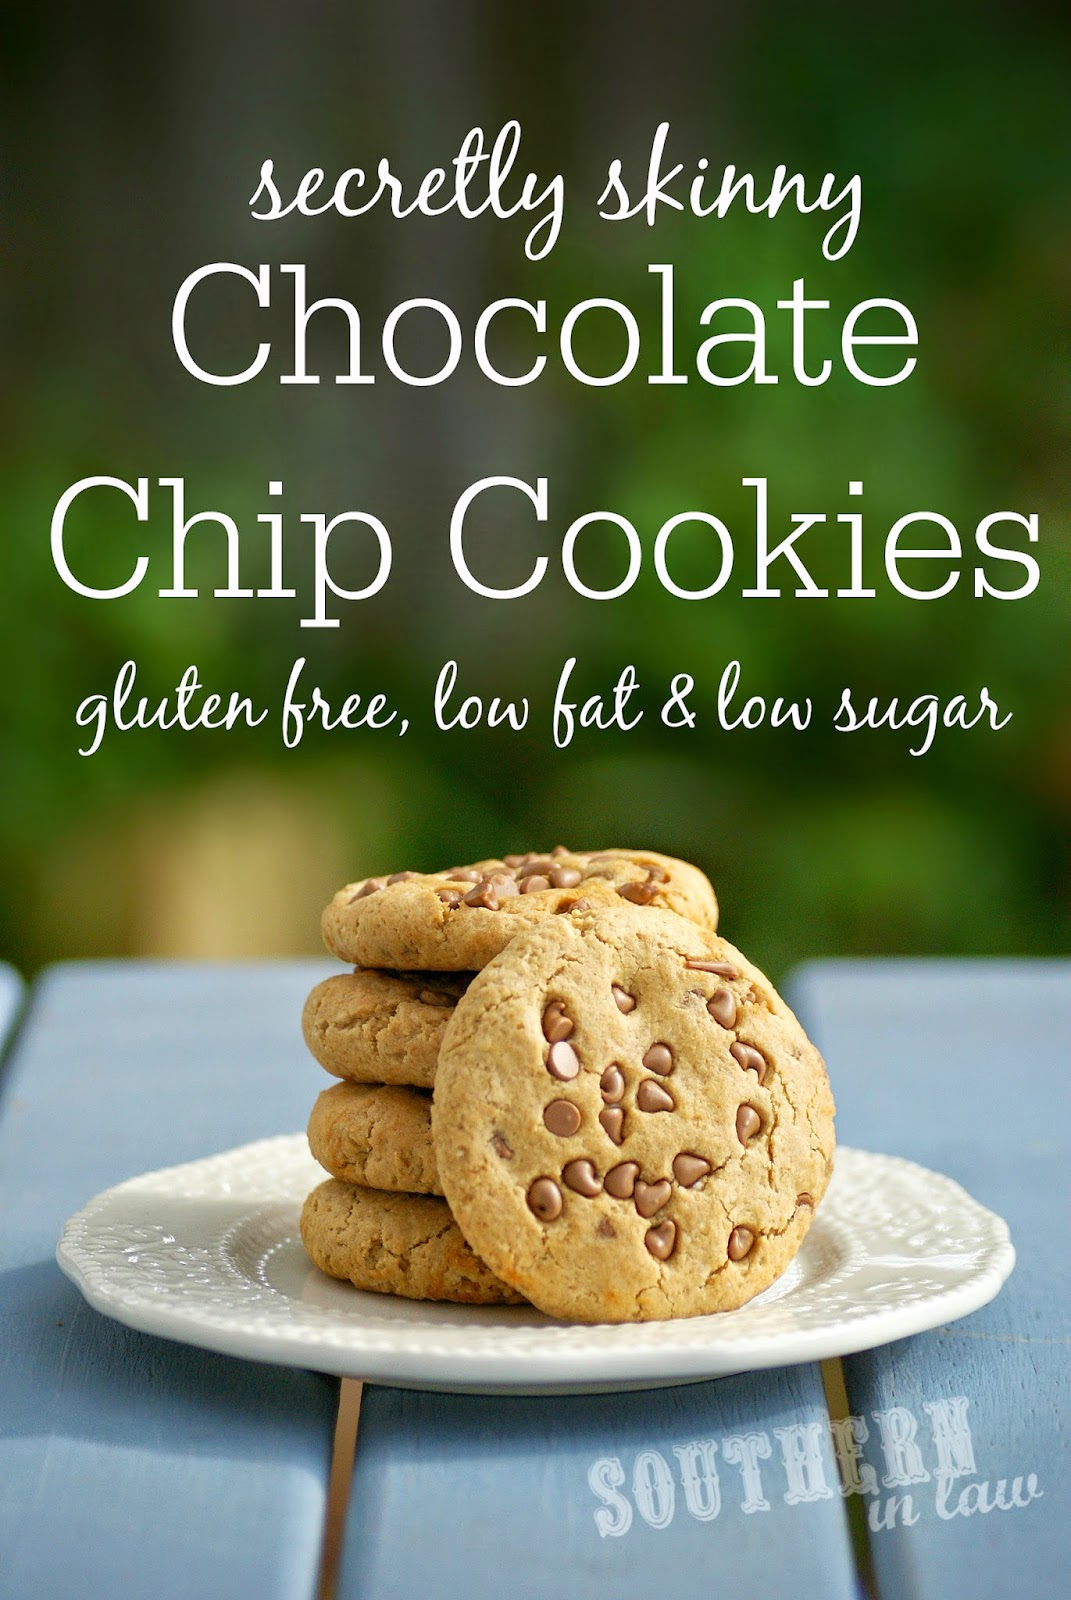 Gluten Free and Low Fat Chocolate Chip Cookies Recipe - gluten free, low fat, low sugar, healthy - small batch cookie recipe